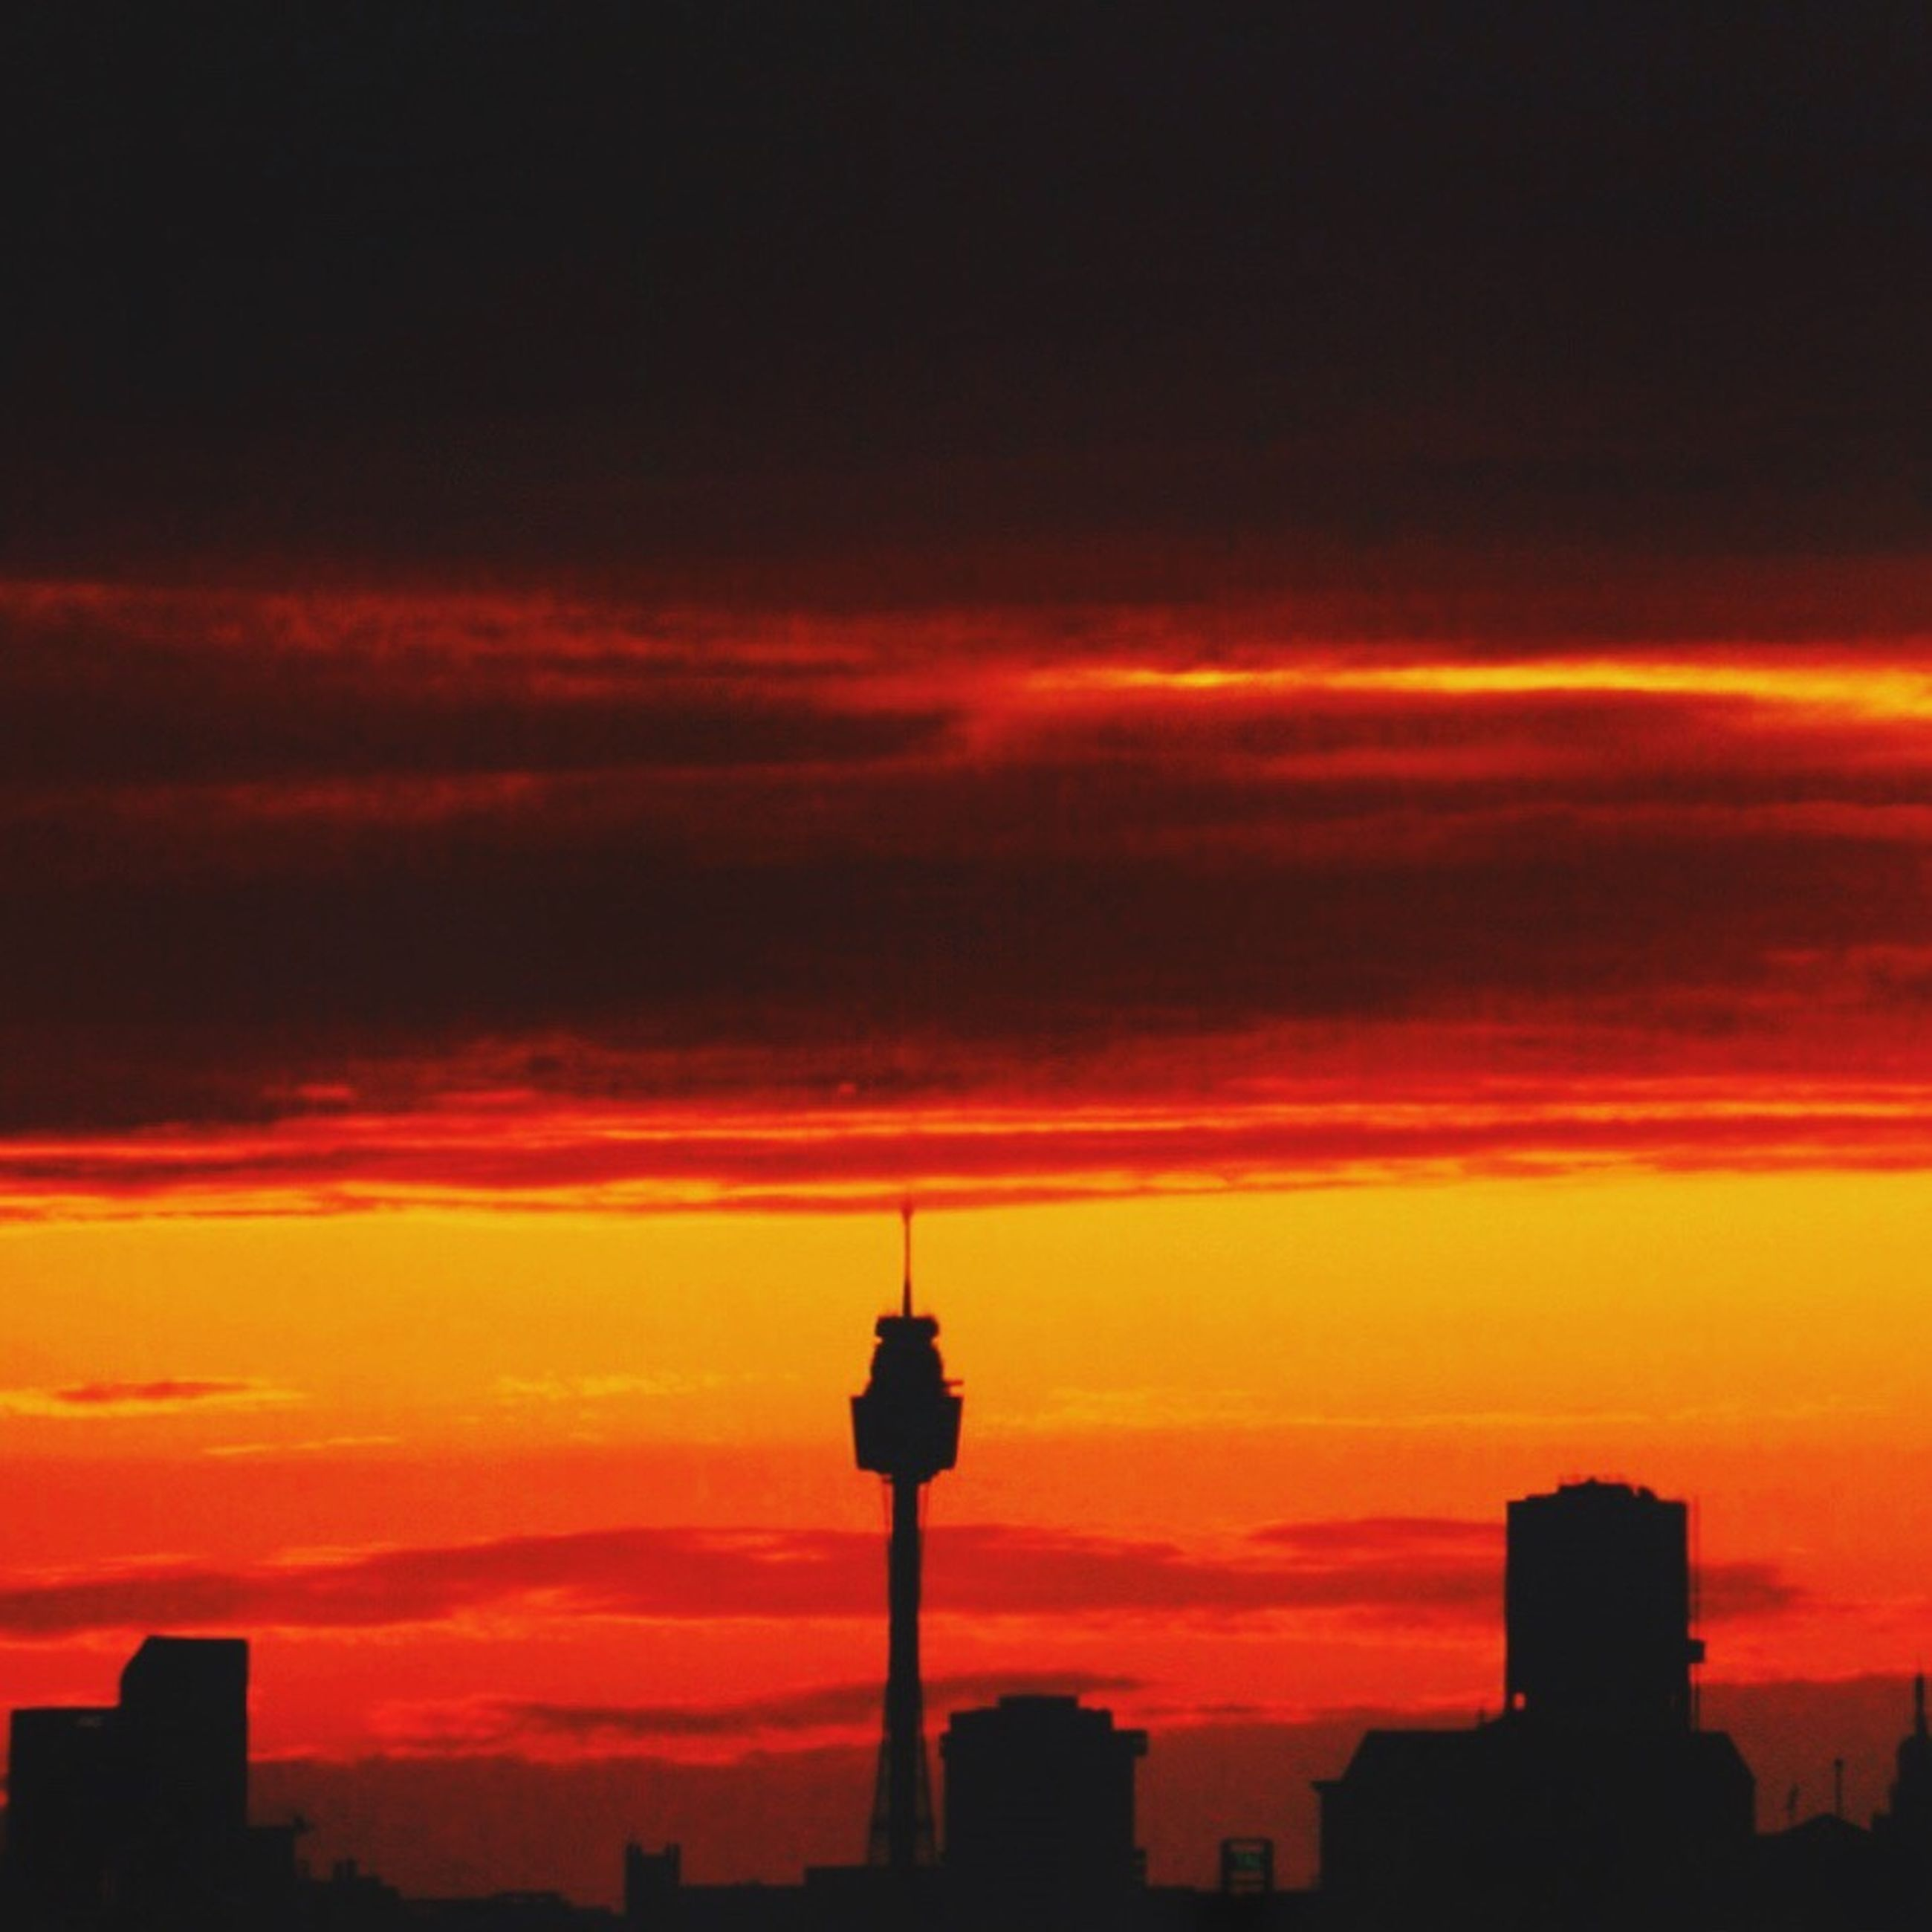 sunset, architecture, built structure, building exterior, communications tower, city, spire, tourism, orange color, sky, travel destinations, tall - high, tower, cloud - sky, romantic sky, fernsehturm, television tower, silhouette, travel, capital cities, high section, skyscraper, red, vibrant color, famous place, dramatic sky, culture, scenics, cloud, international landmark, sunbeam, outdoors, atmosphere, majestic, nature, office building